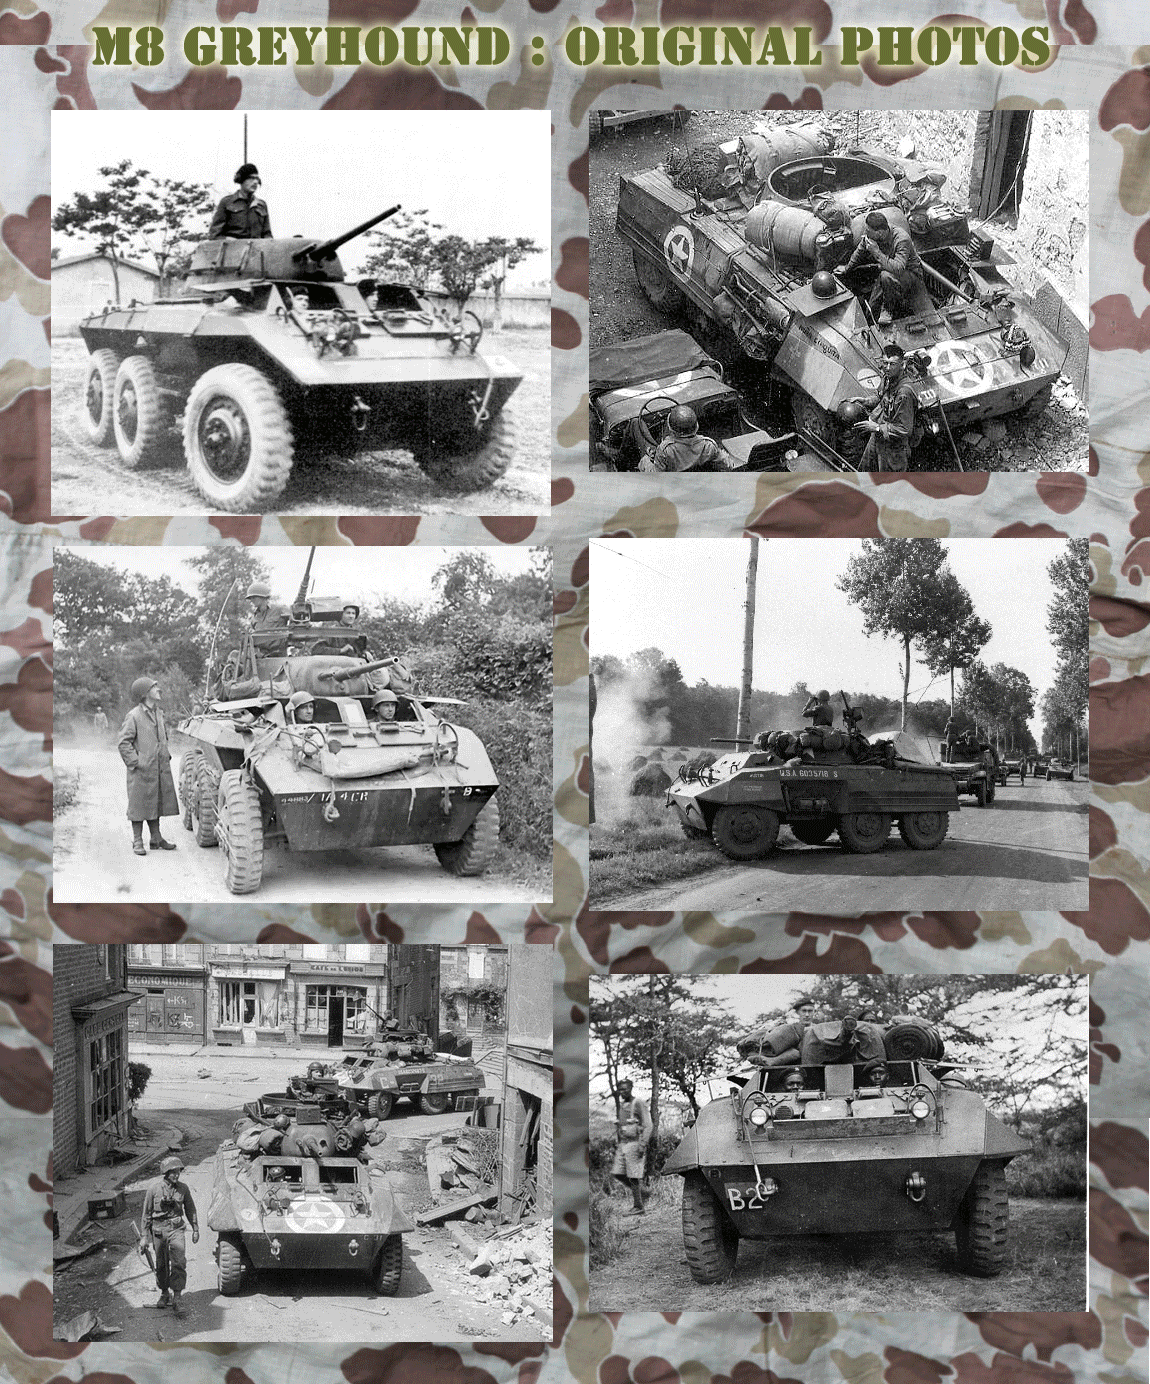 Original WW2 Black and white photos of M8 Greyhound in service